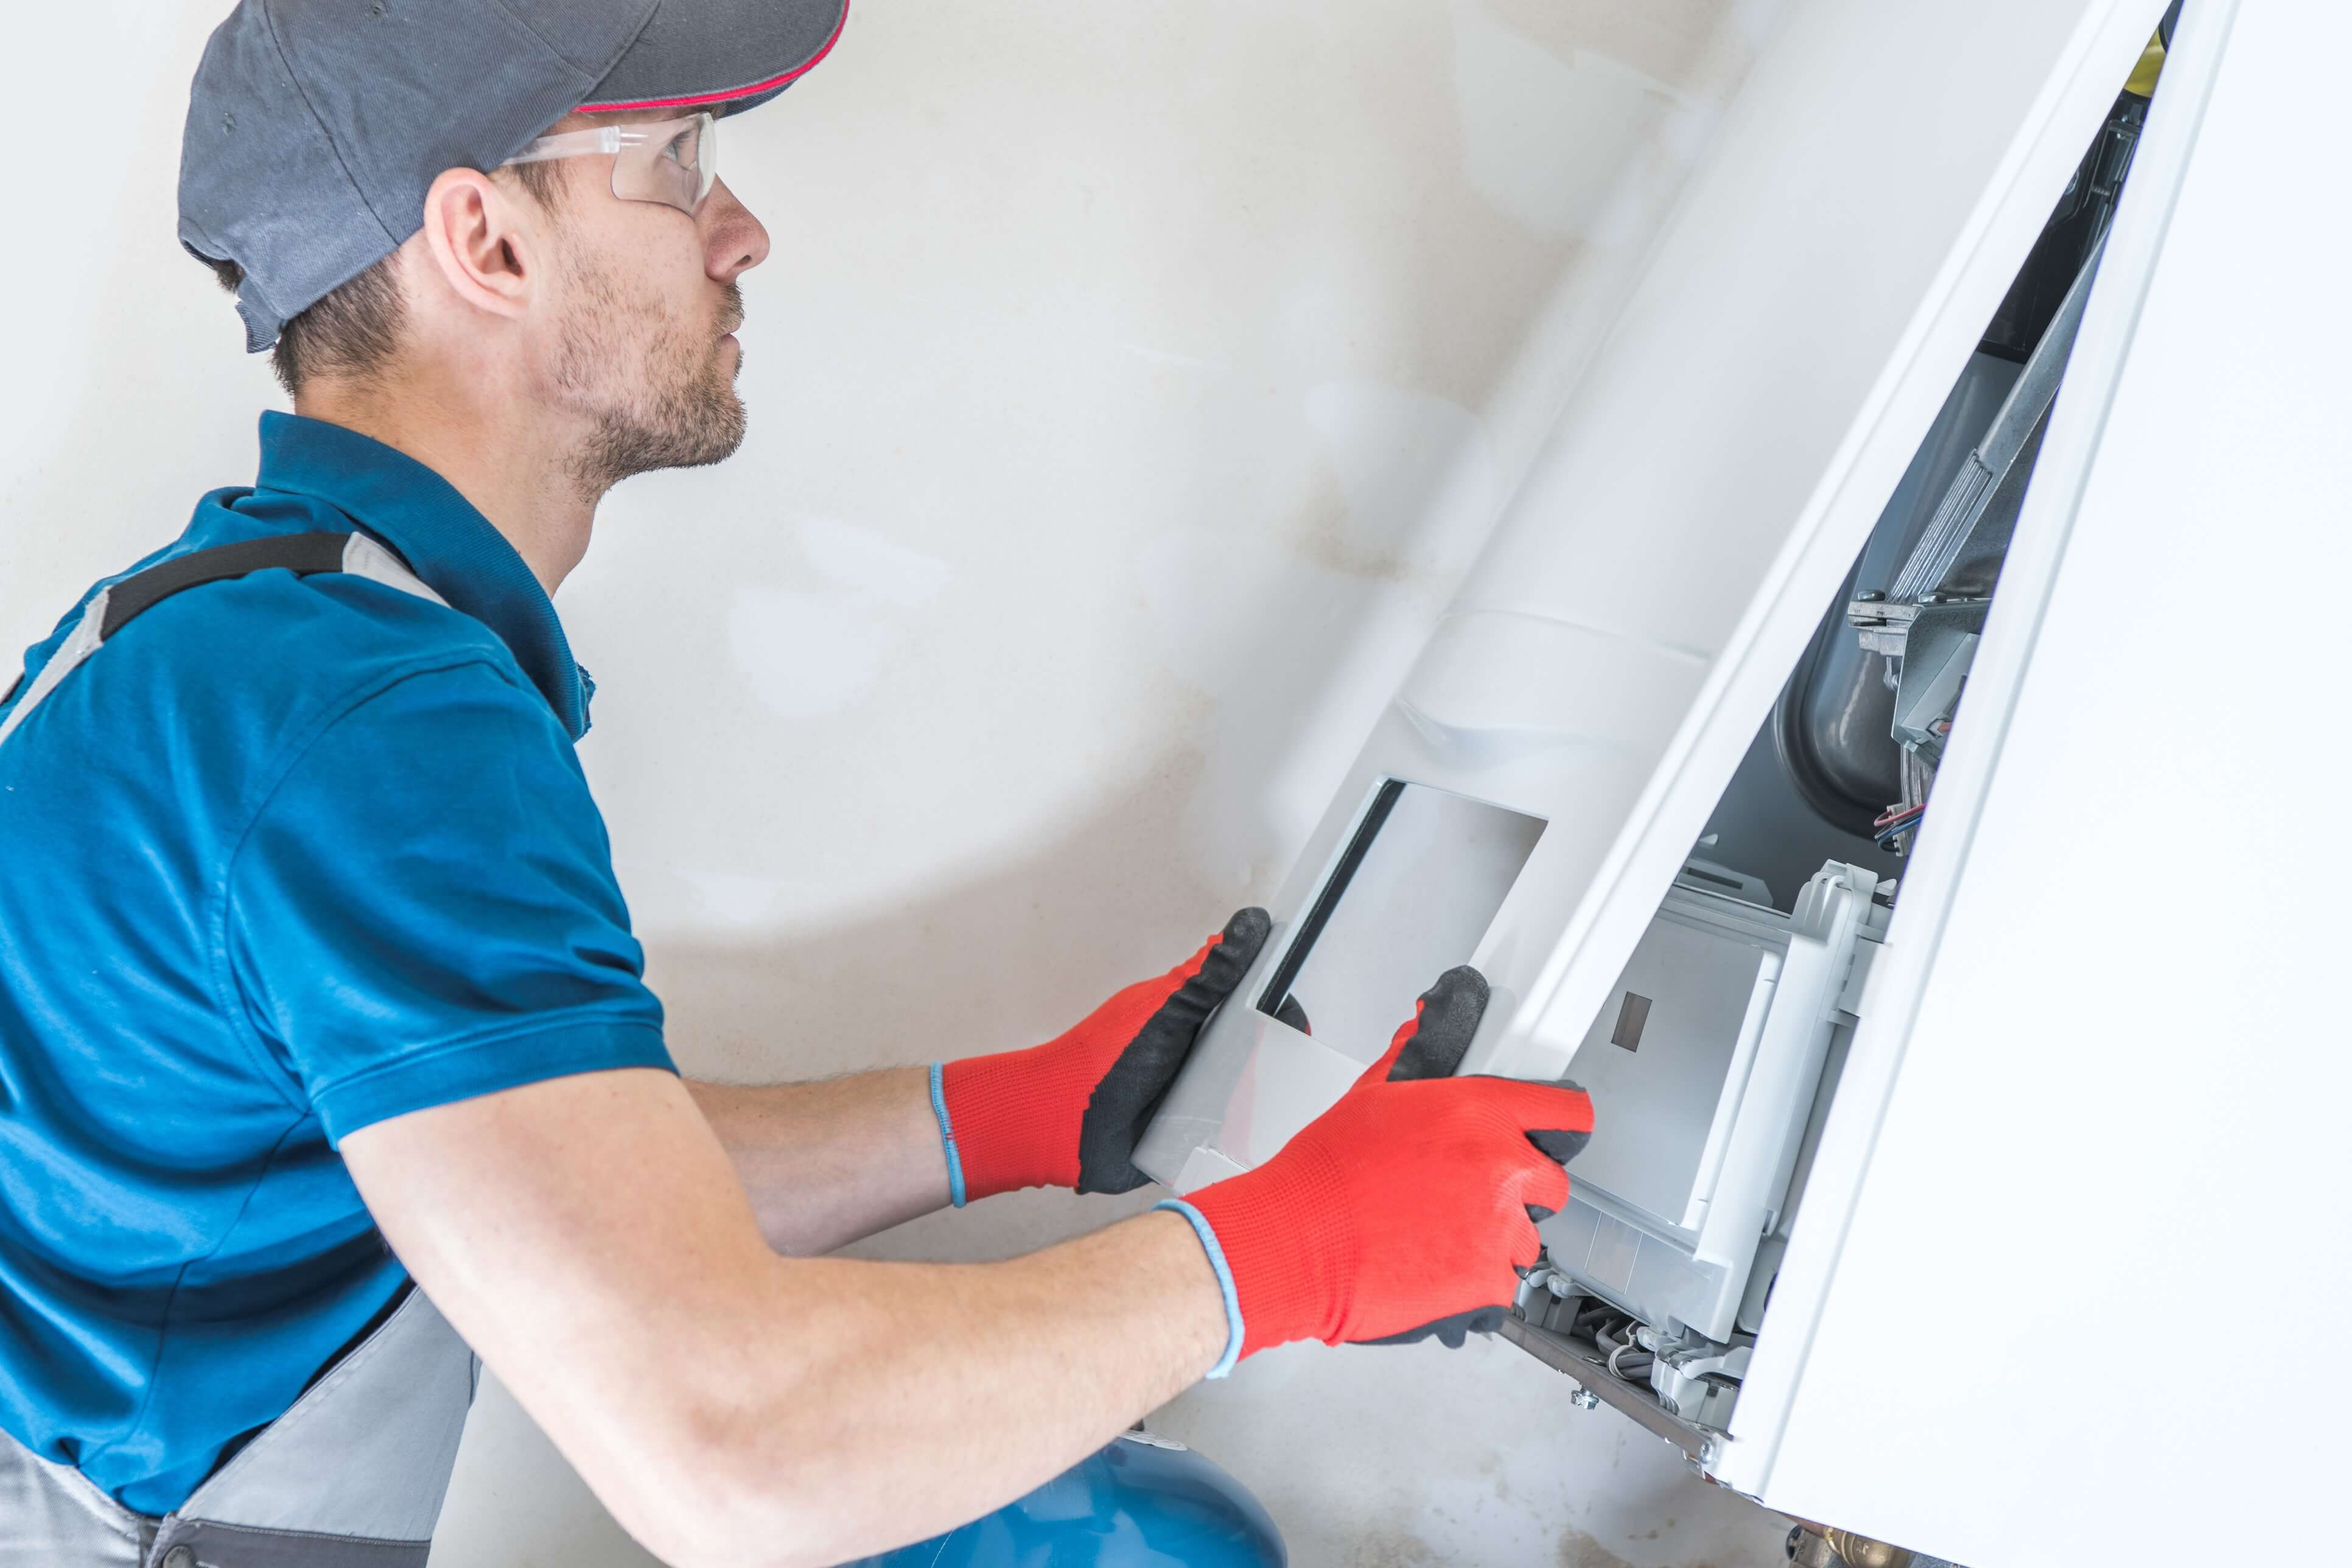 Things to Look Out For to Know When Your Furnace Needs to be Repaired